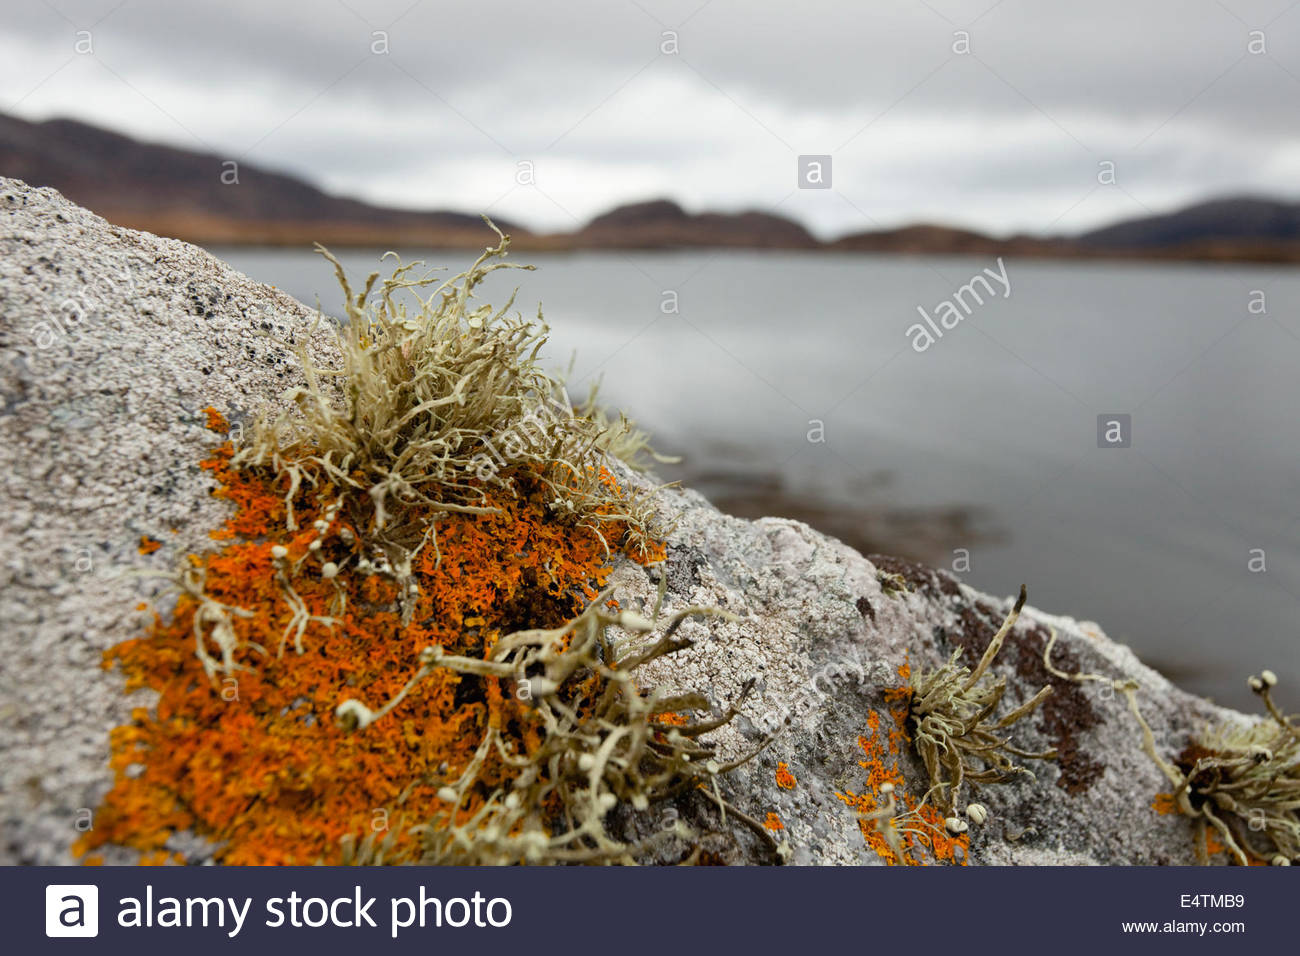 A detail of lichen on a boulder by the side of Loch Aineort near Lochboisdale, South Uist, Outer Hebrides, Scotland. - Stock Image